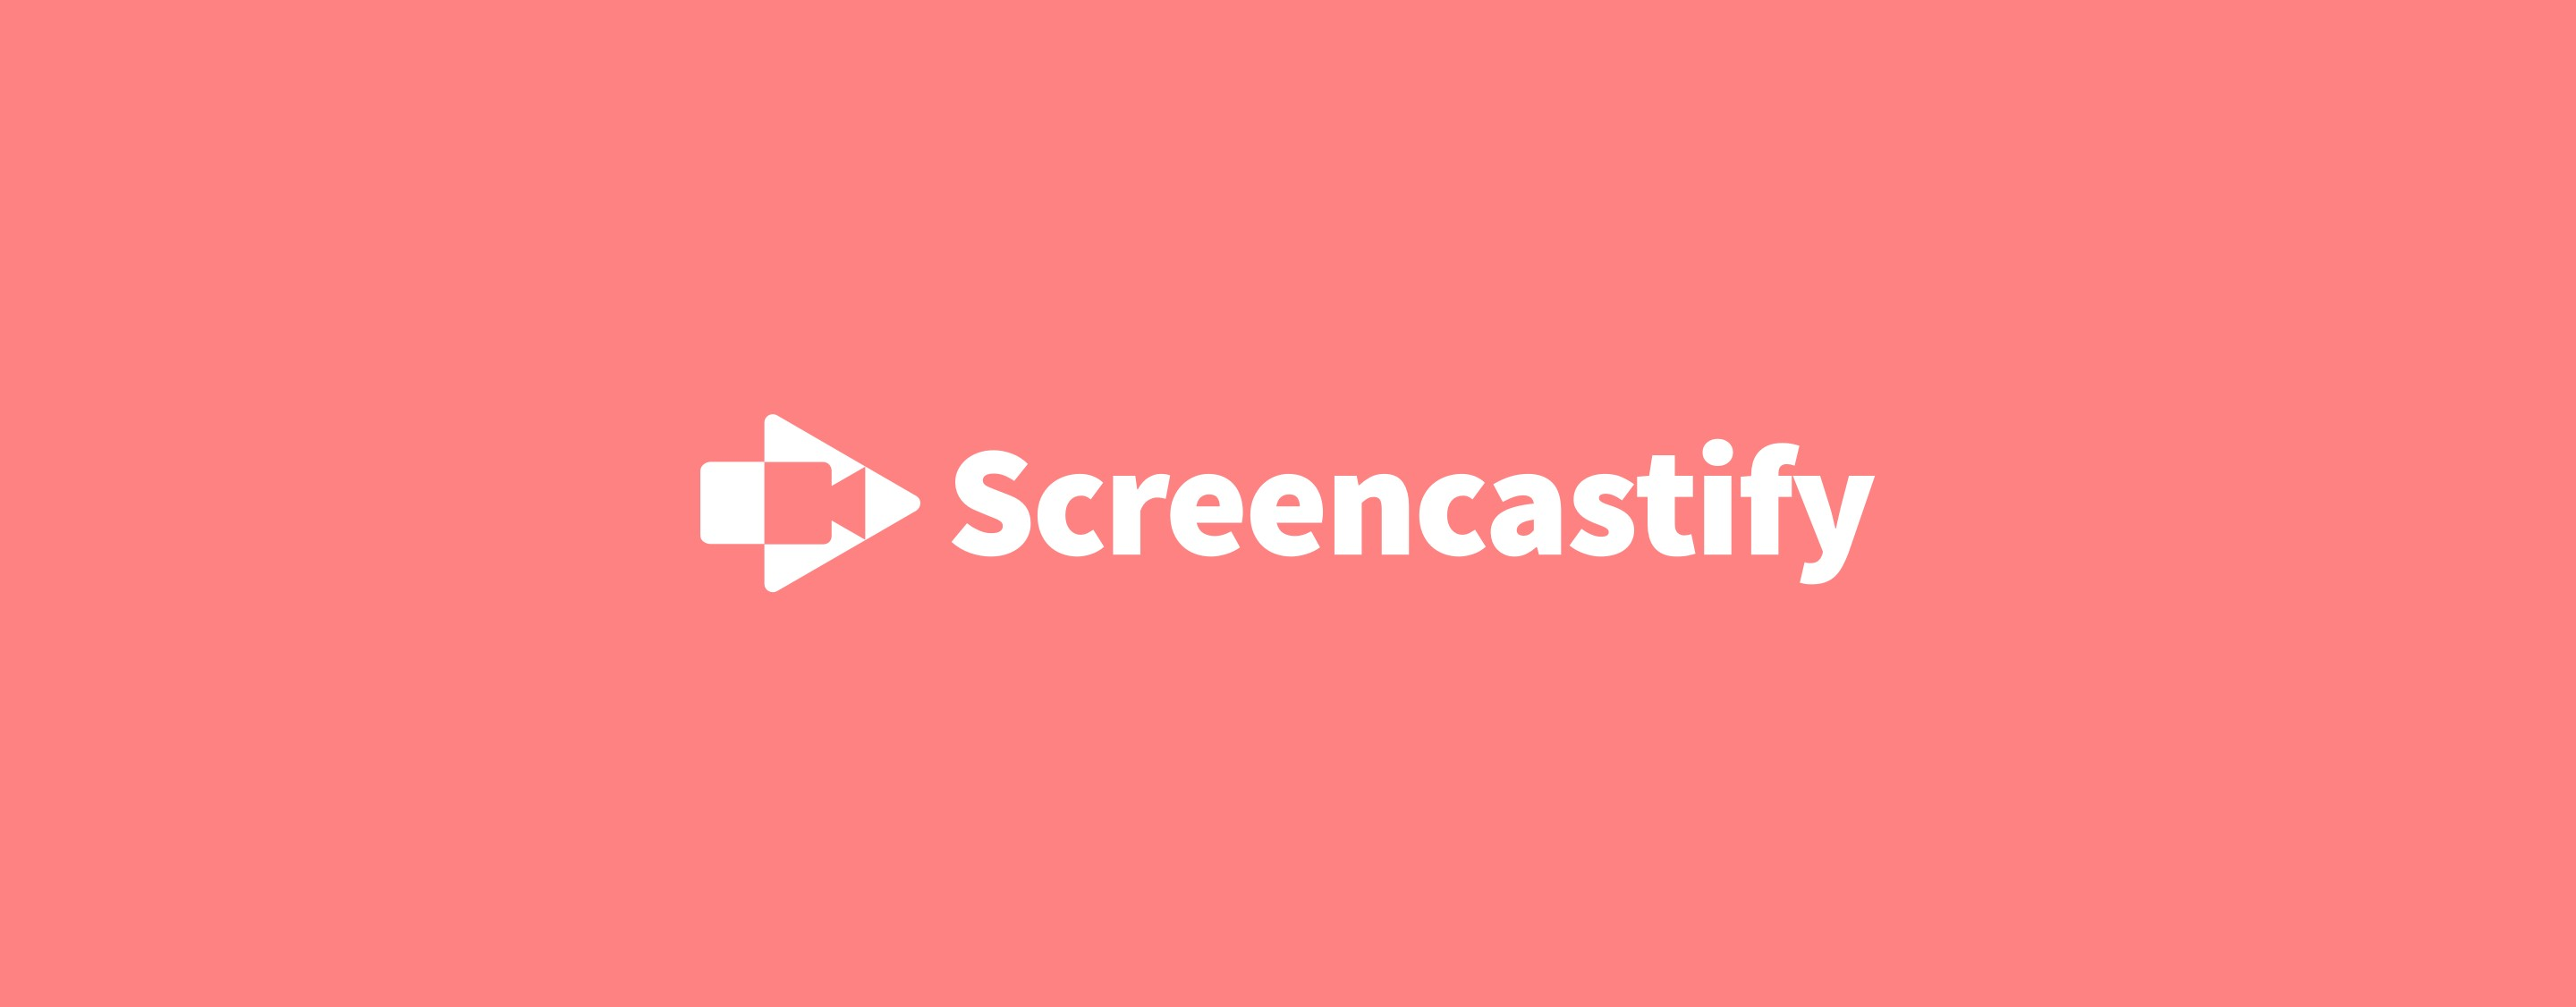 Screencastify | LinkedIn